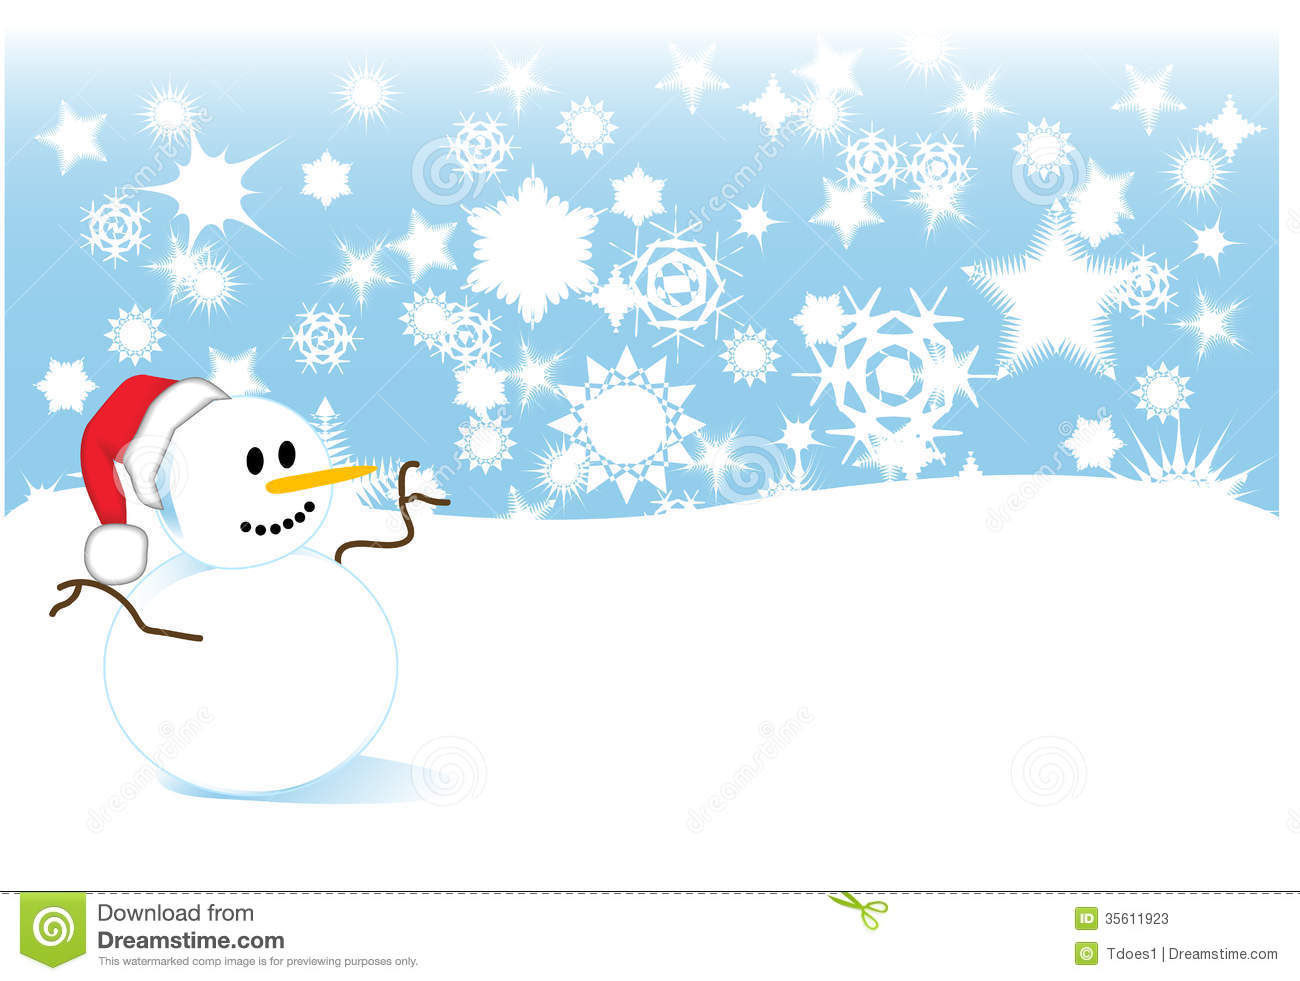 Blizzard clipart snow ground. Pencil and in color